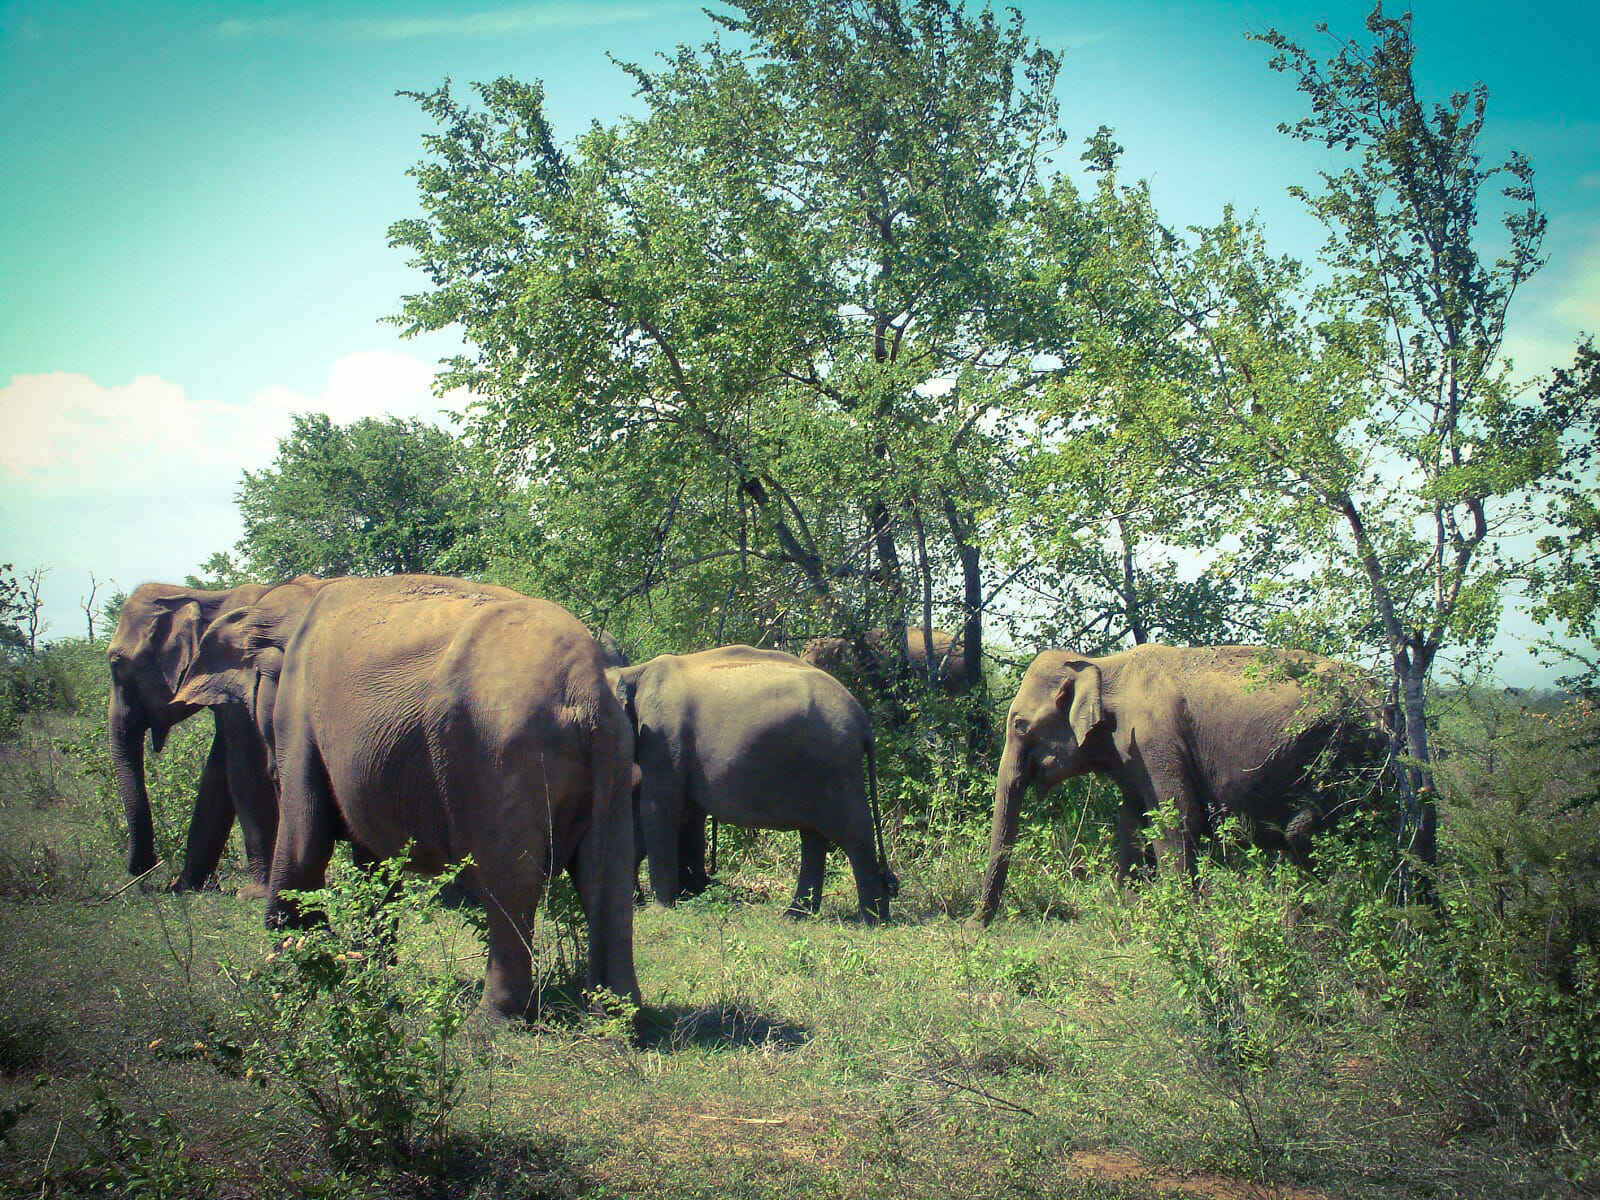 Elephants in Udawalawa National Park